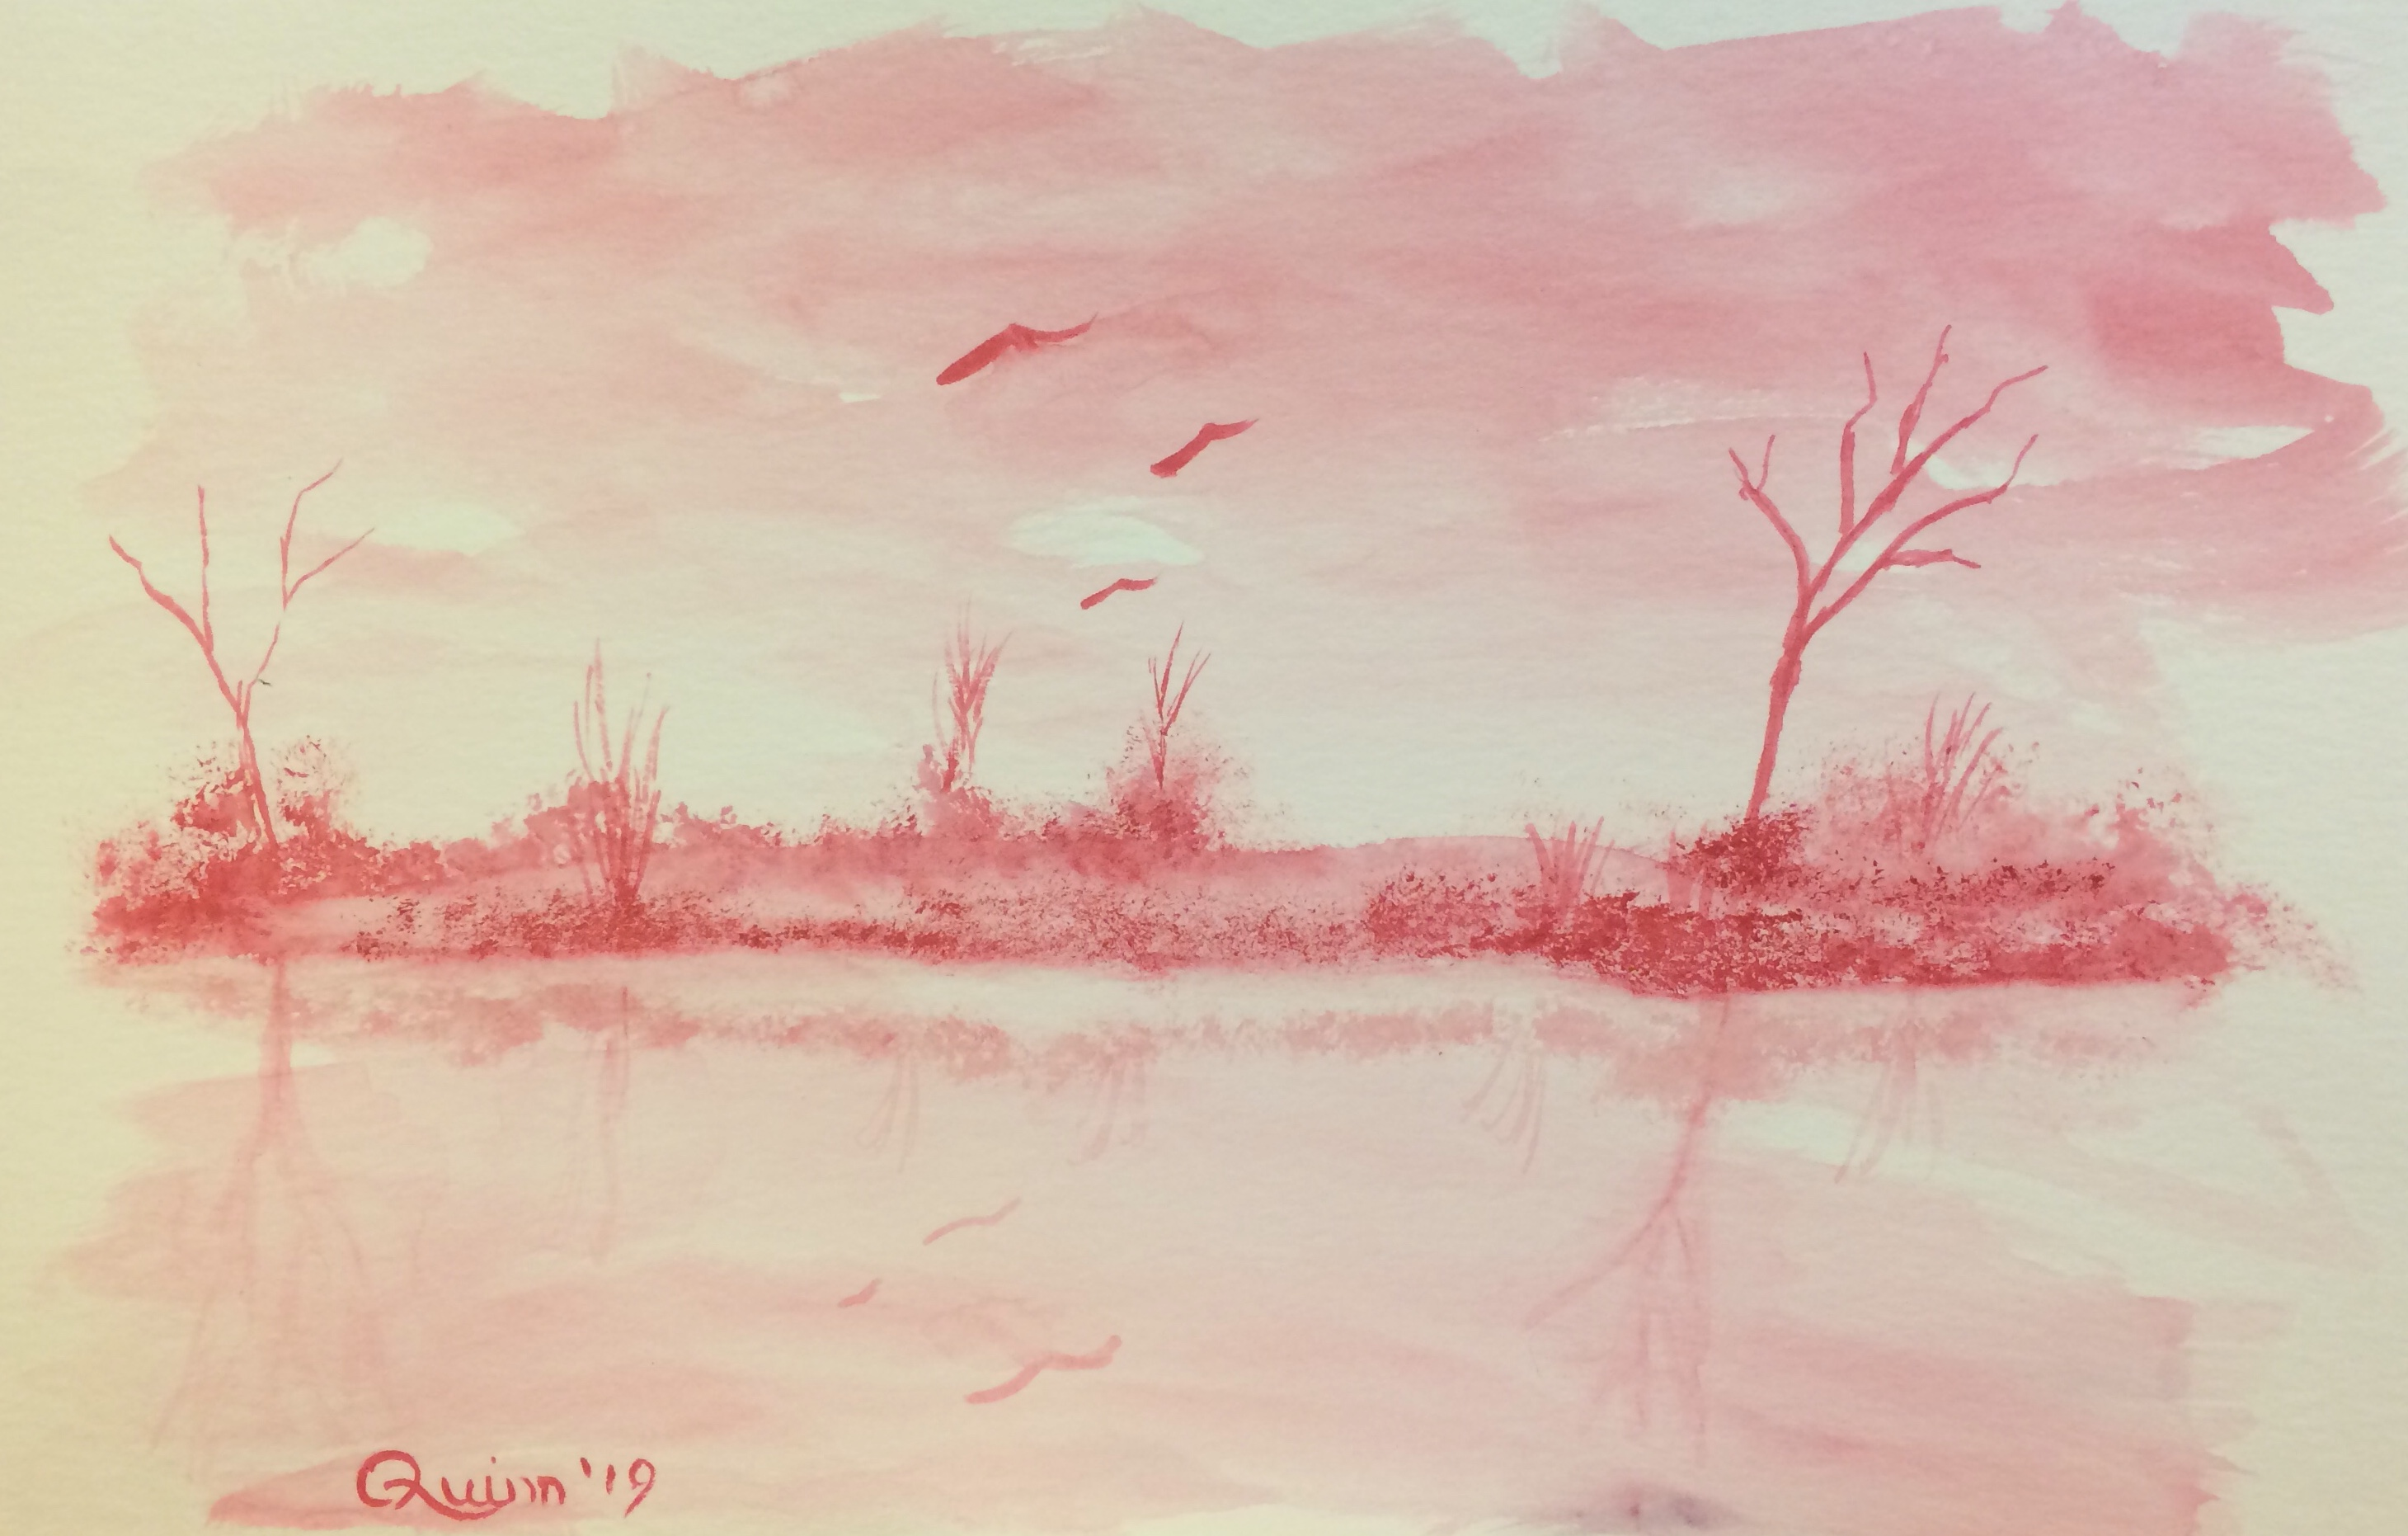 watercolour painting landscape - trees, small island, reflection in water. three birds.